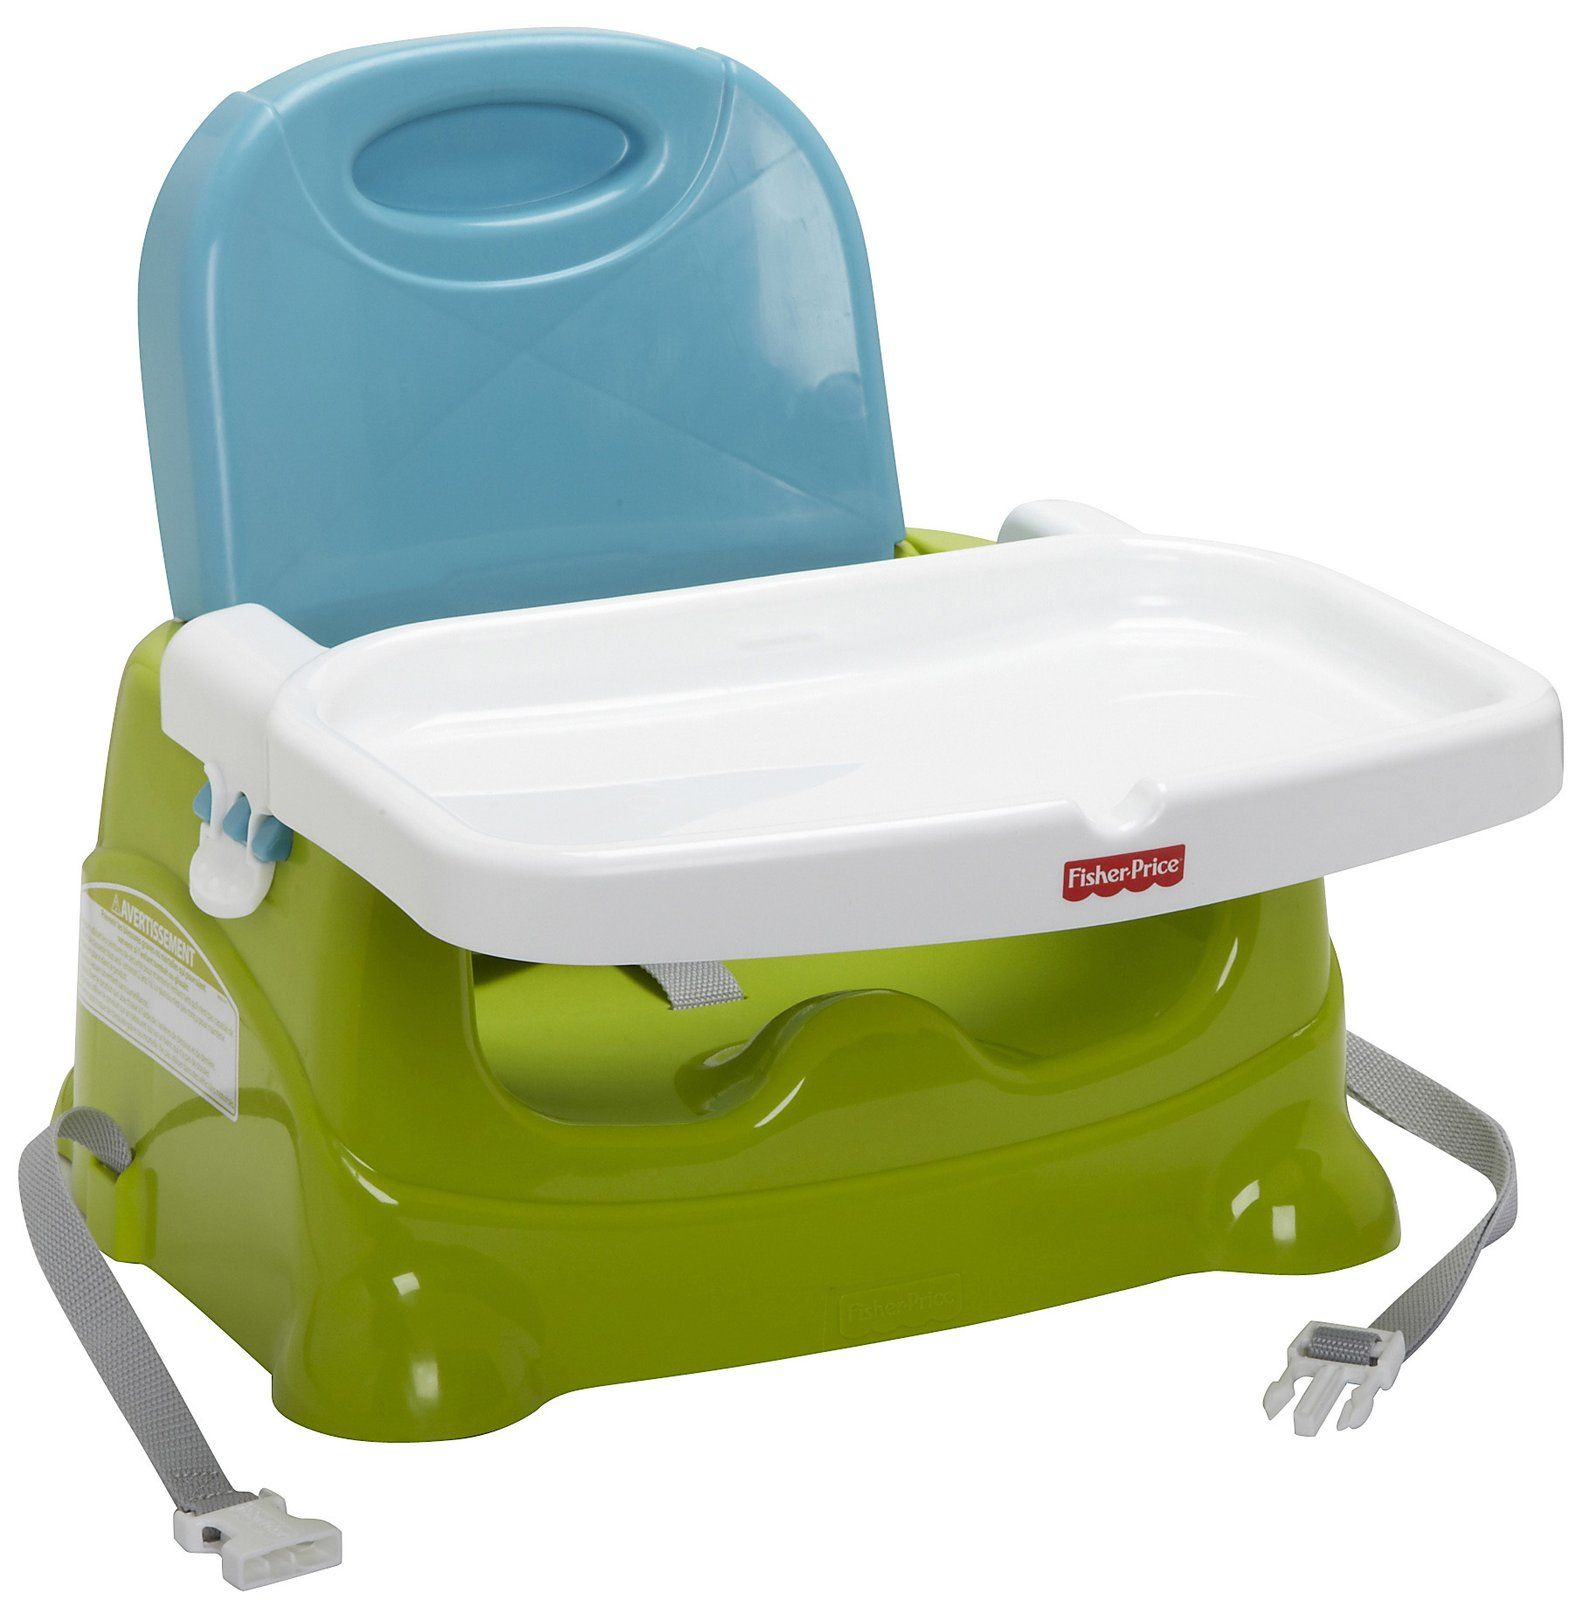 Fisher Price Healthy Care Booster   Green/Blue This Is A Great Portable Seat  To Travel With And To Even Take In Restaurants That May Not Have High Chairs  ...